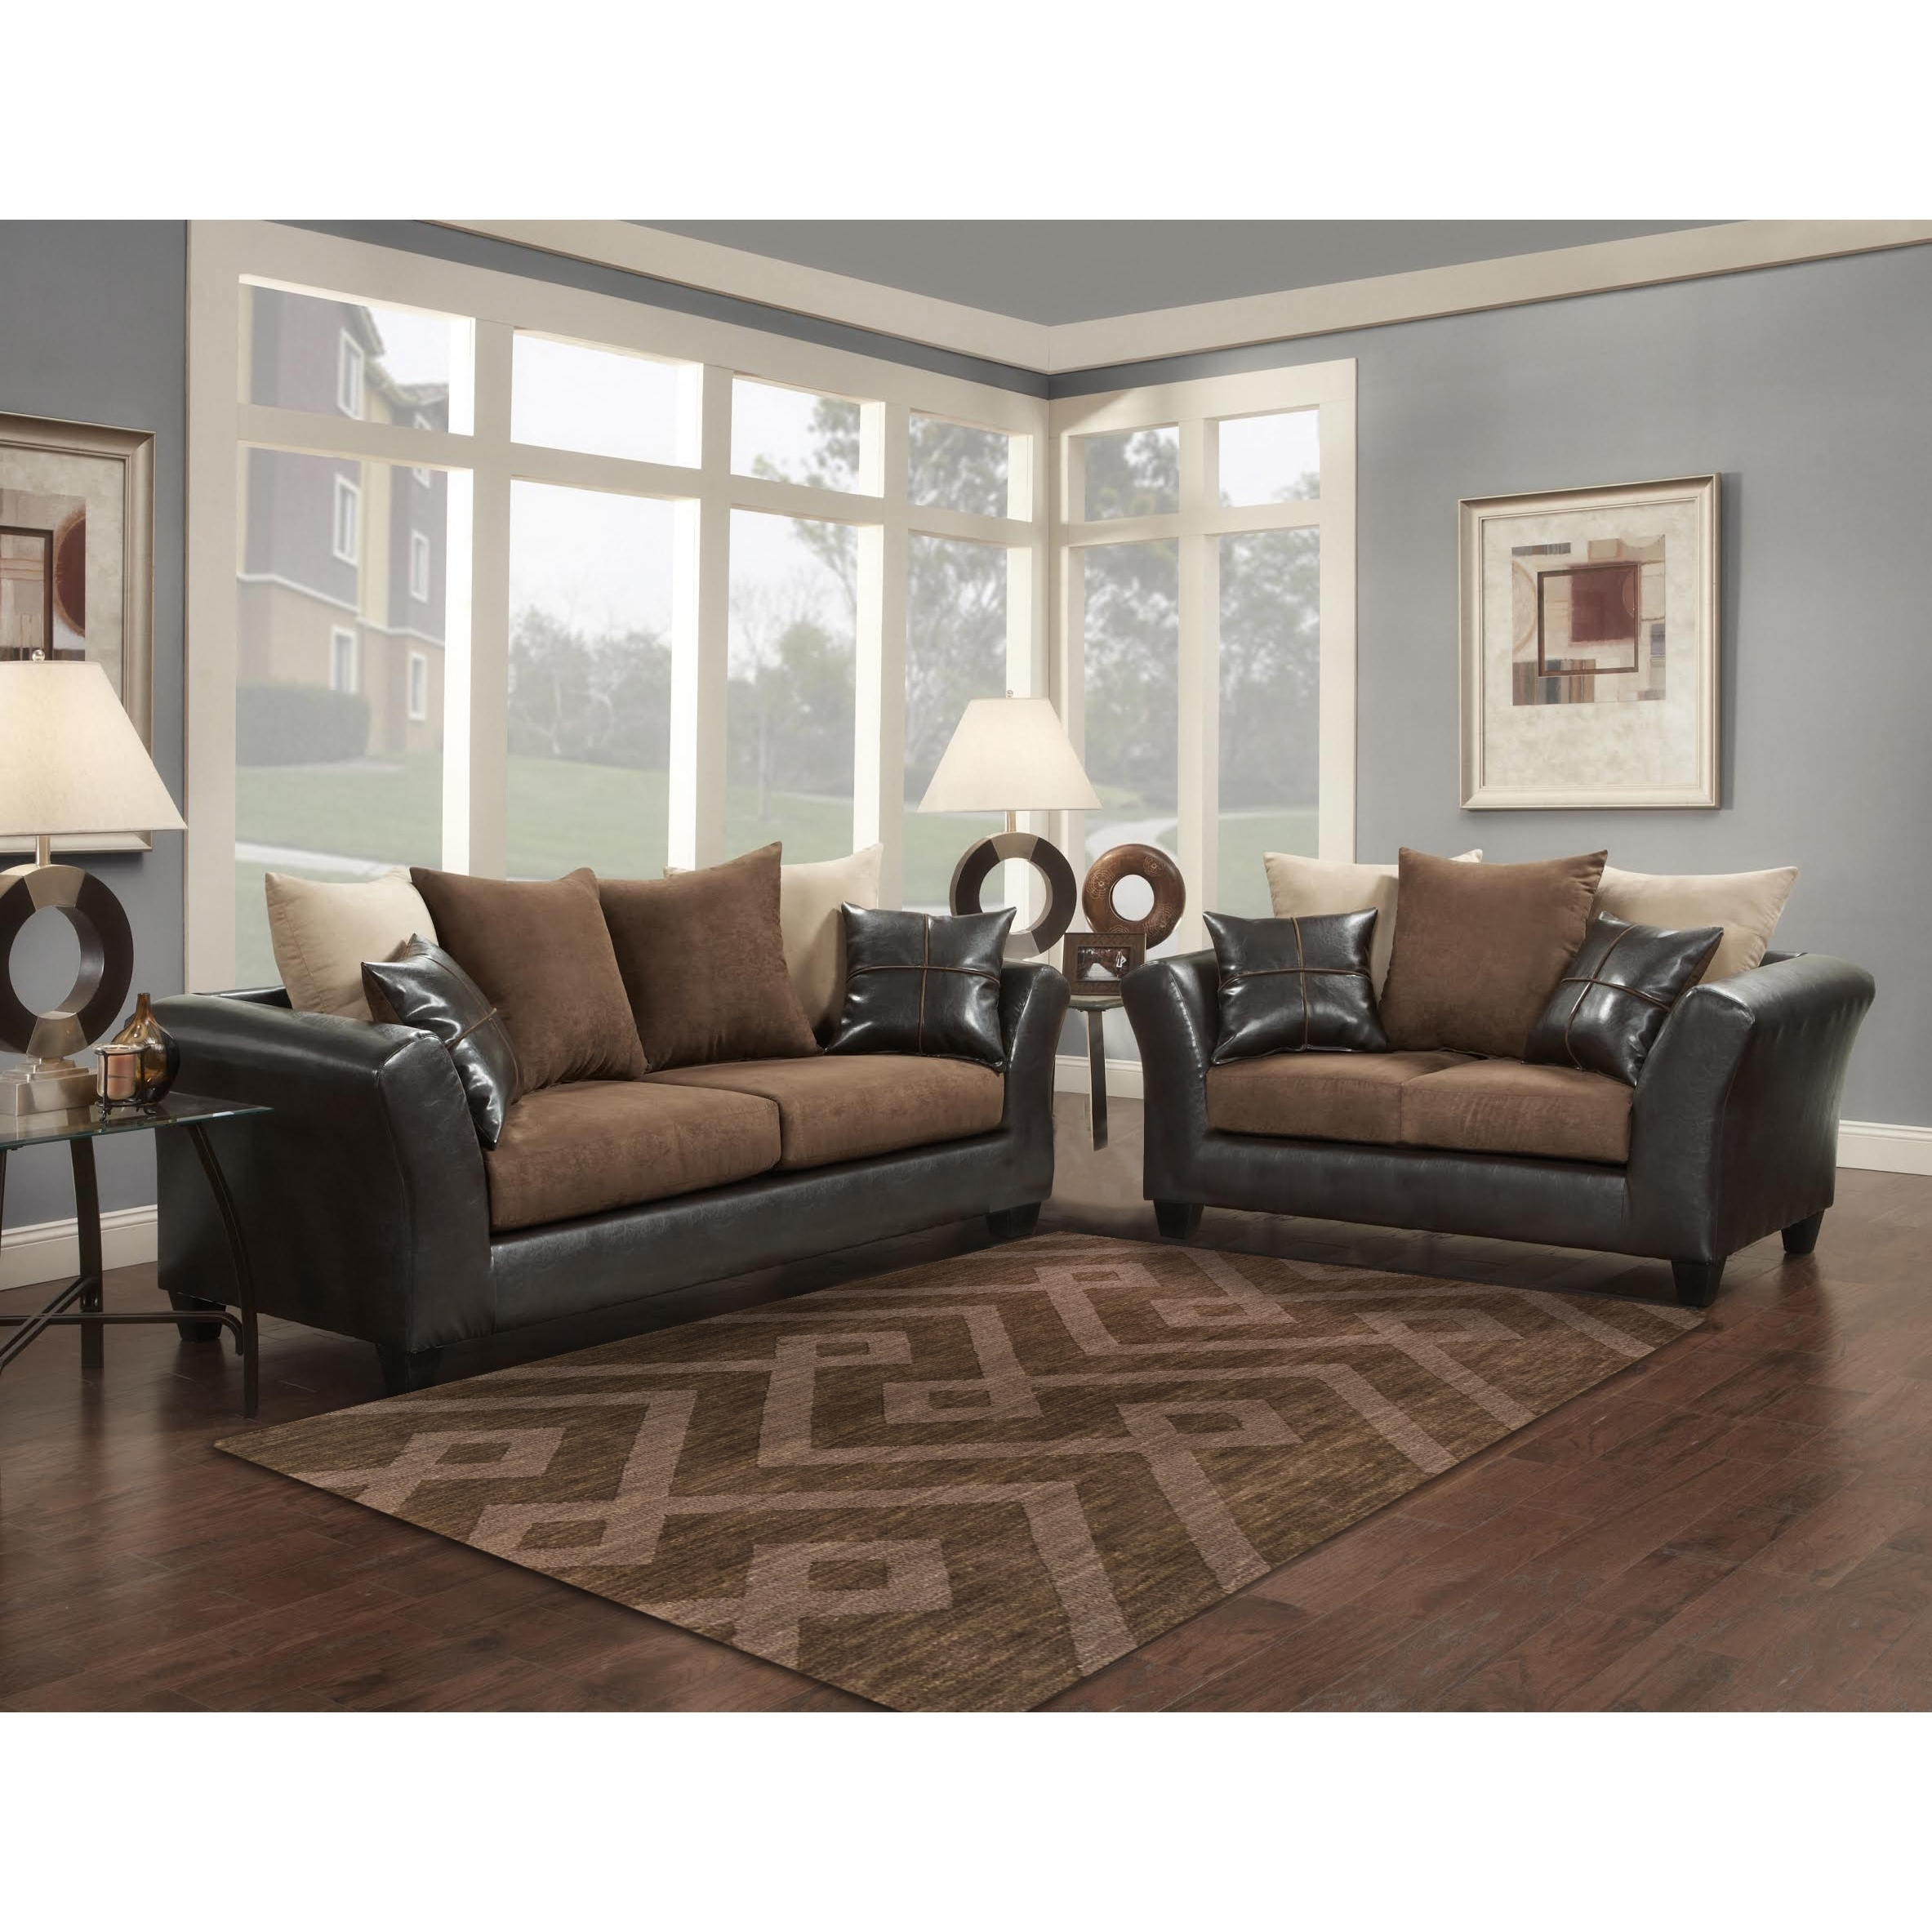 Jedd Fabric Reclining Sectional Sofas For Popular Sectional Sofa Fabric Sofas With Chaise Horrifying Couches Sale (View 6 of 20)